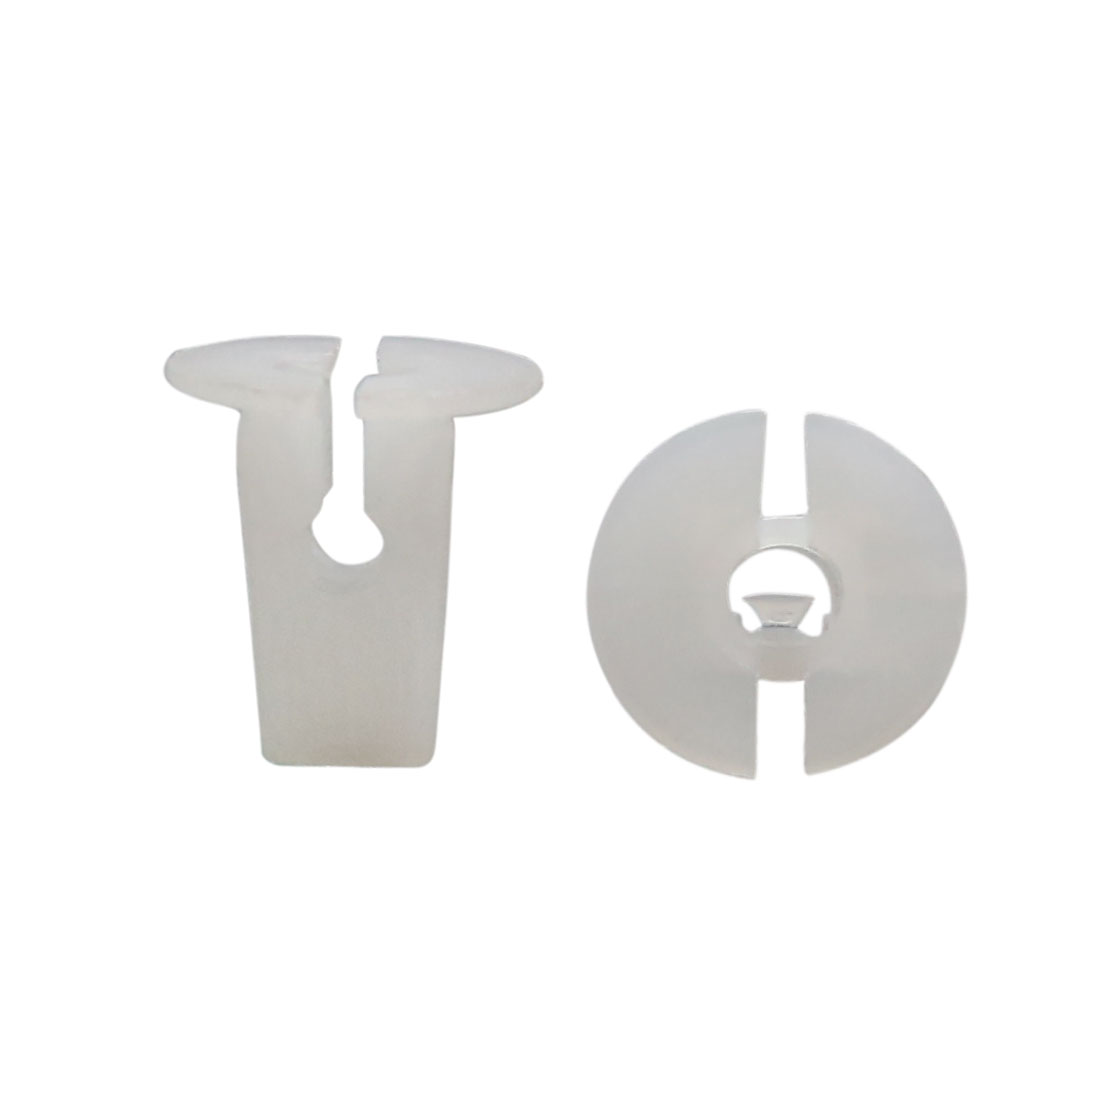 50Pcs White Plastic Rivet Push-Type Car Bumper Retainer Clips for 7 x 6mm Hole